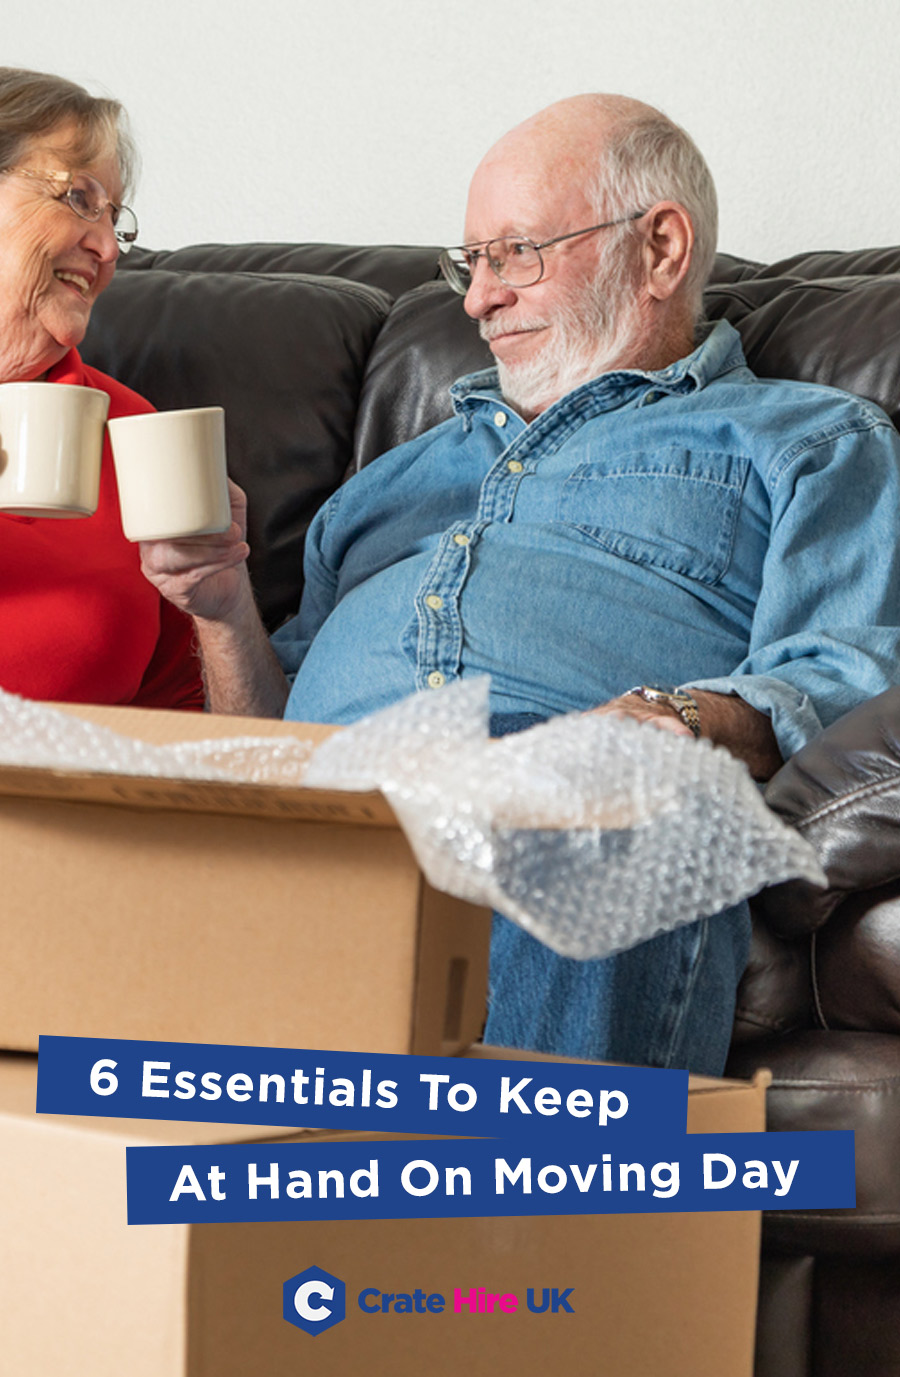 What 6 Essentials Should You Keep Close at Hand On Moving Day?